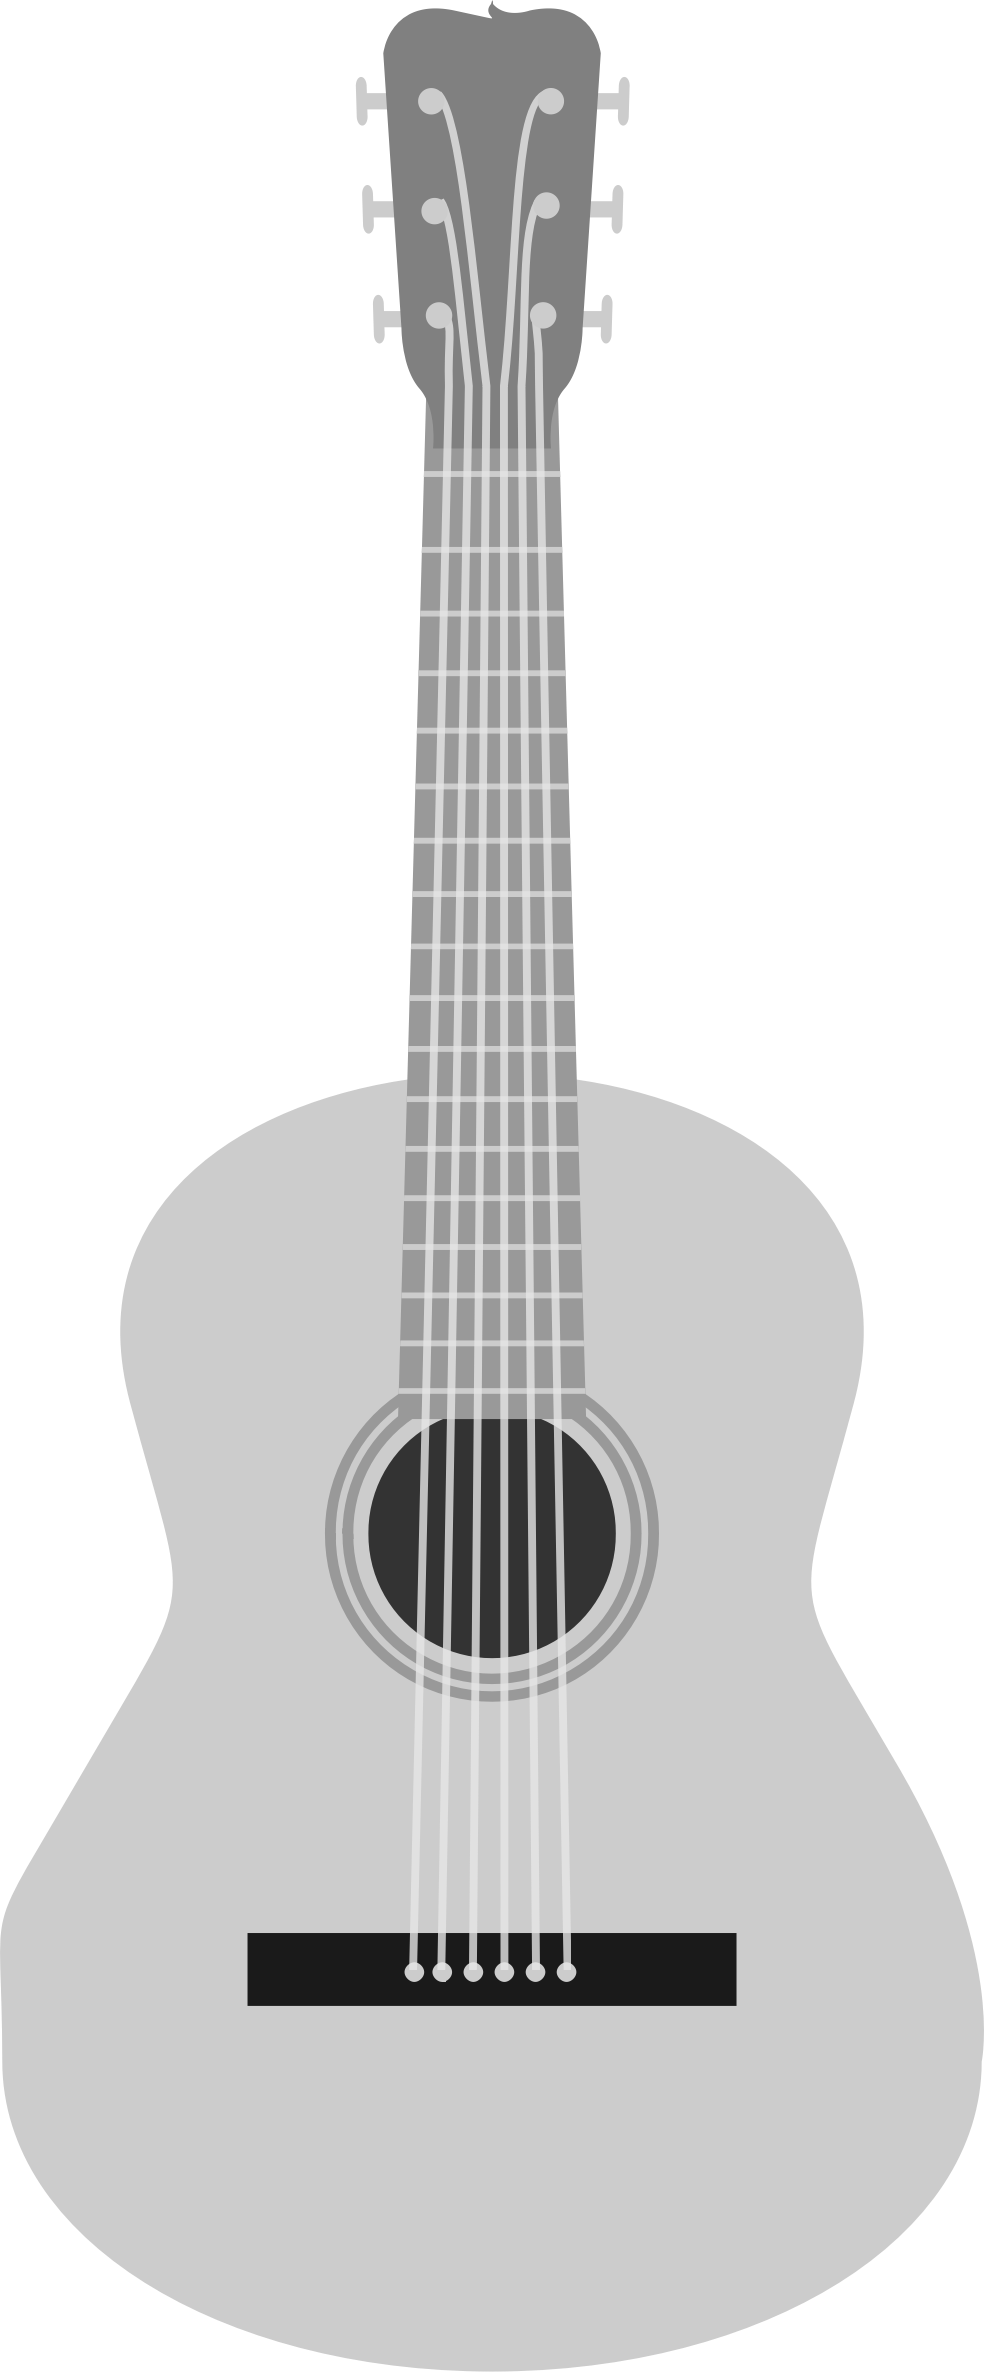 Grayscale acoustic guitar by ScarTissue